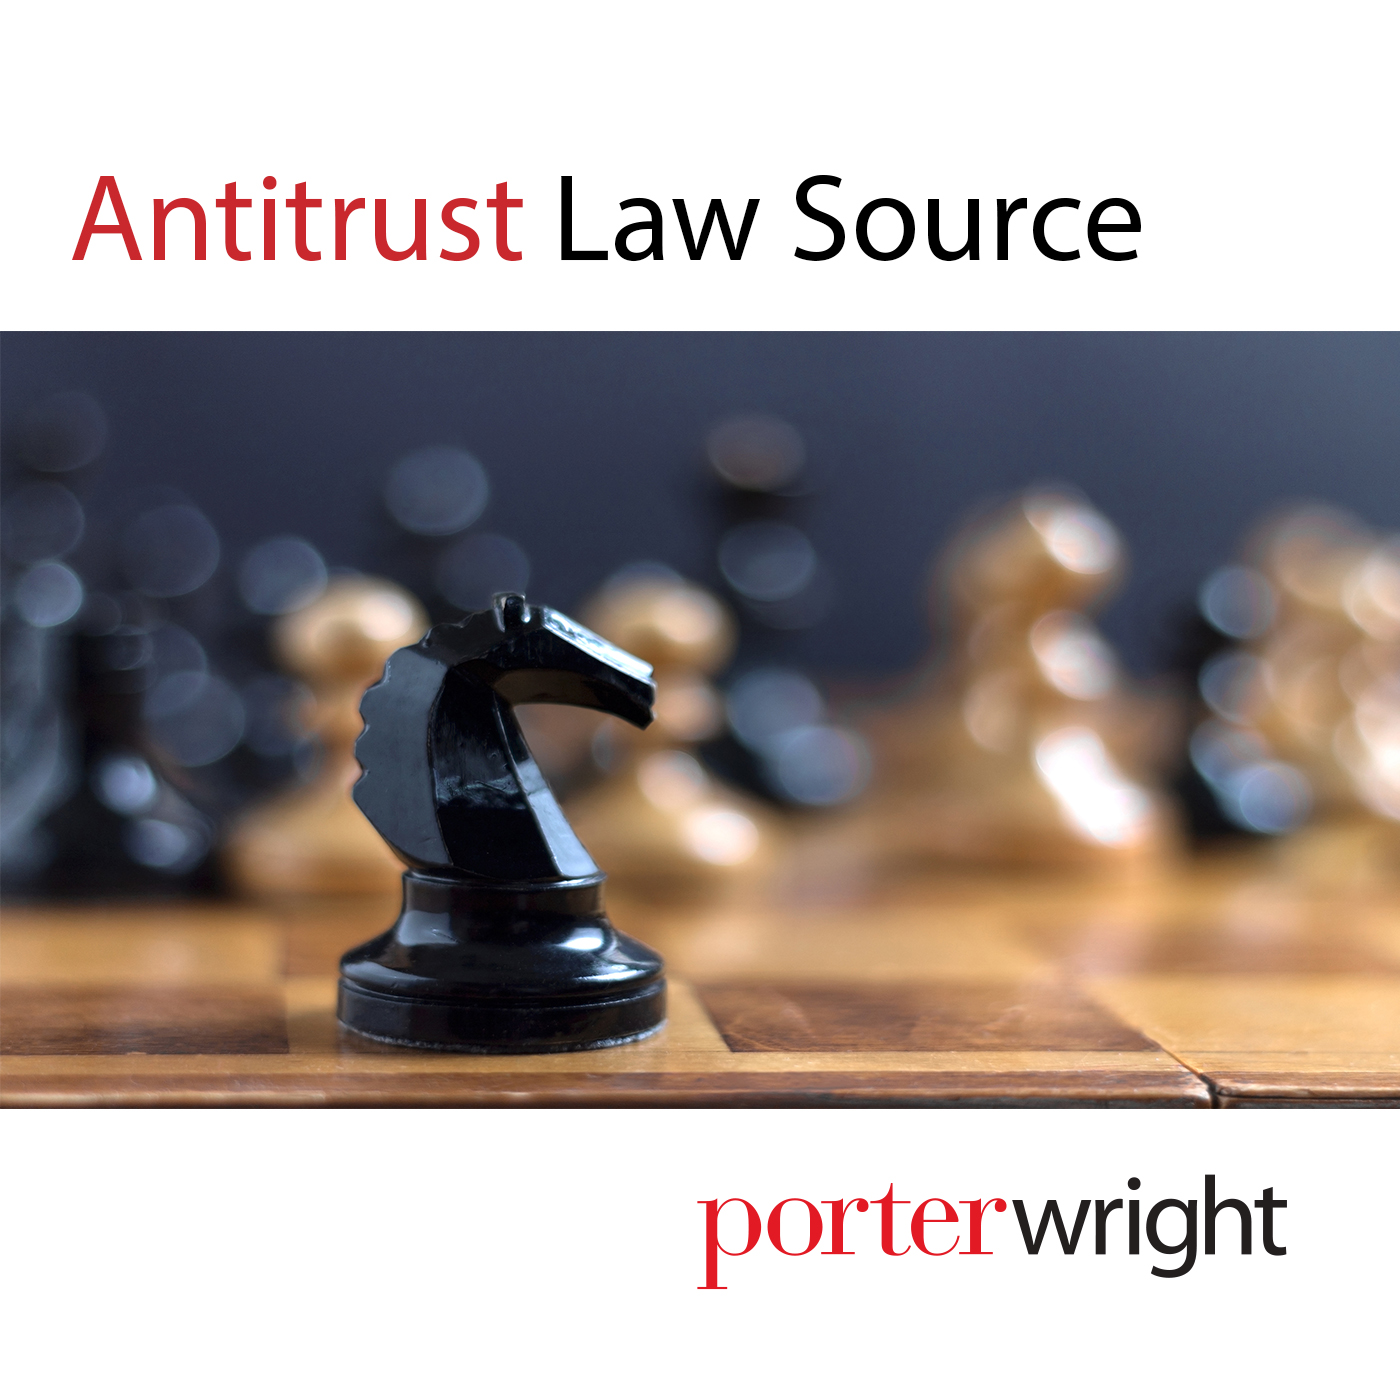 Antitrust Law Source